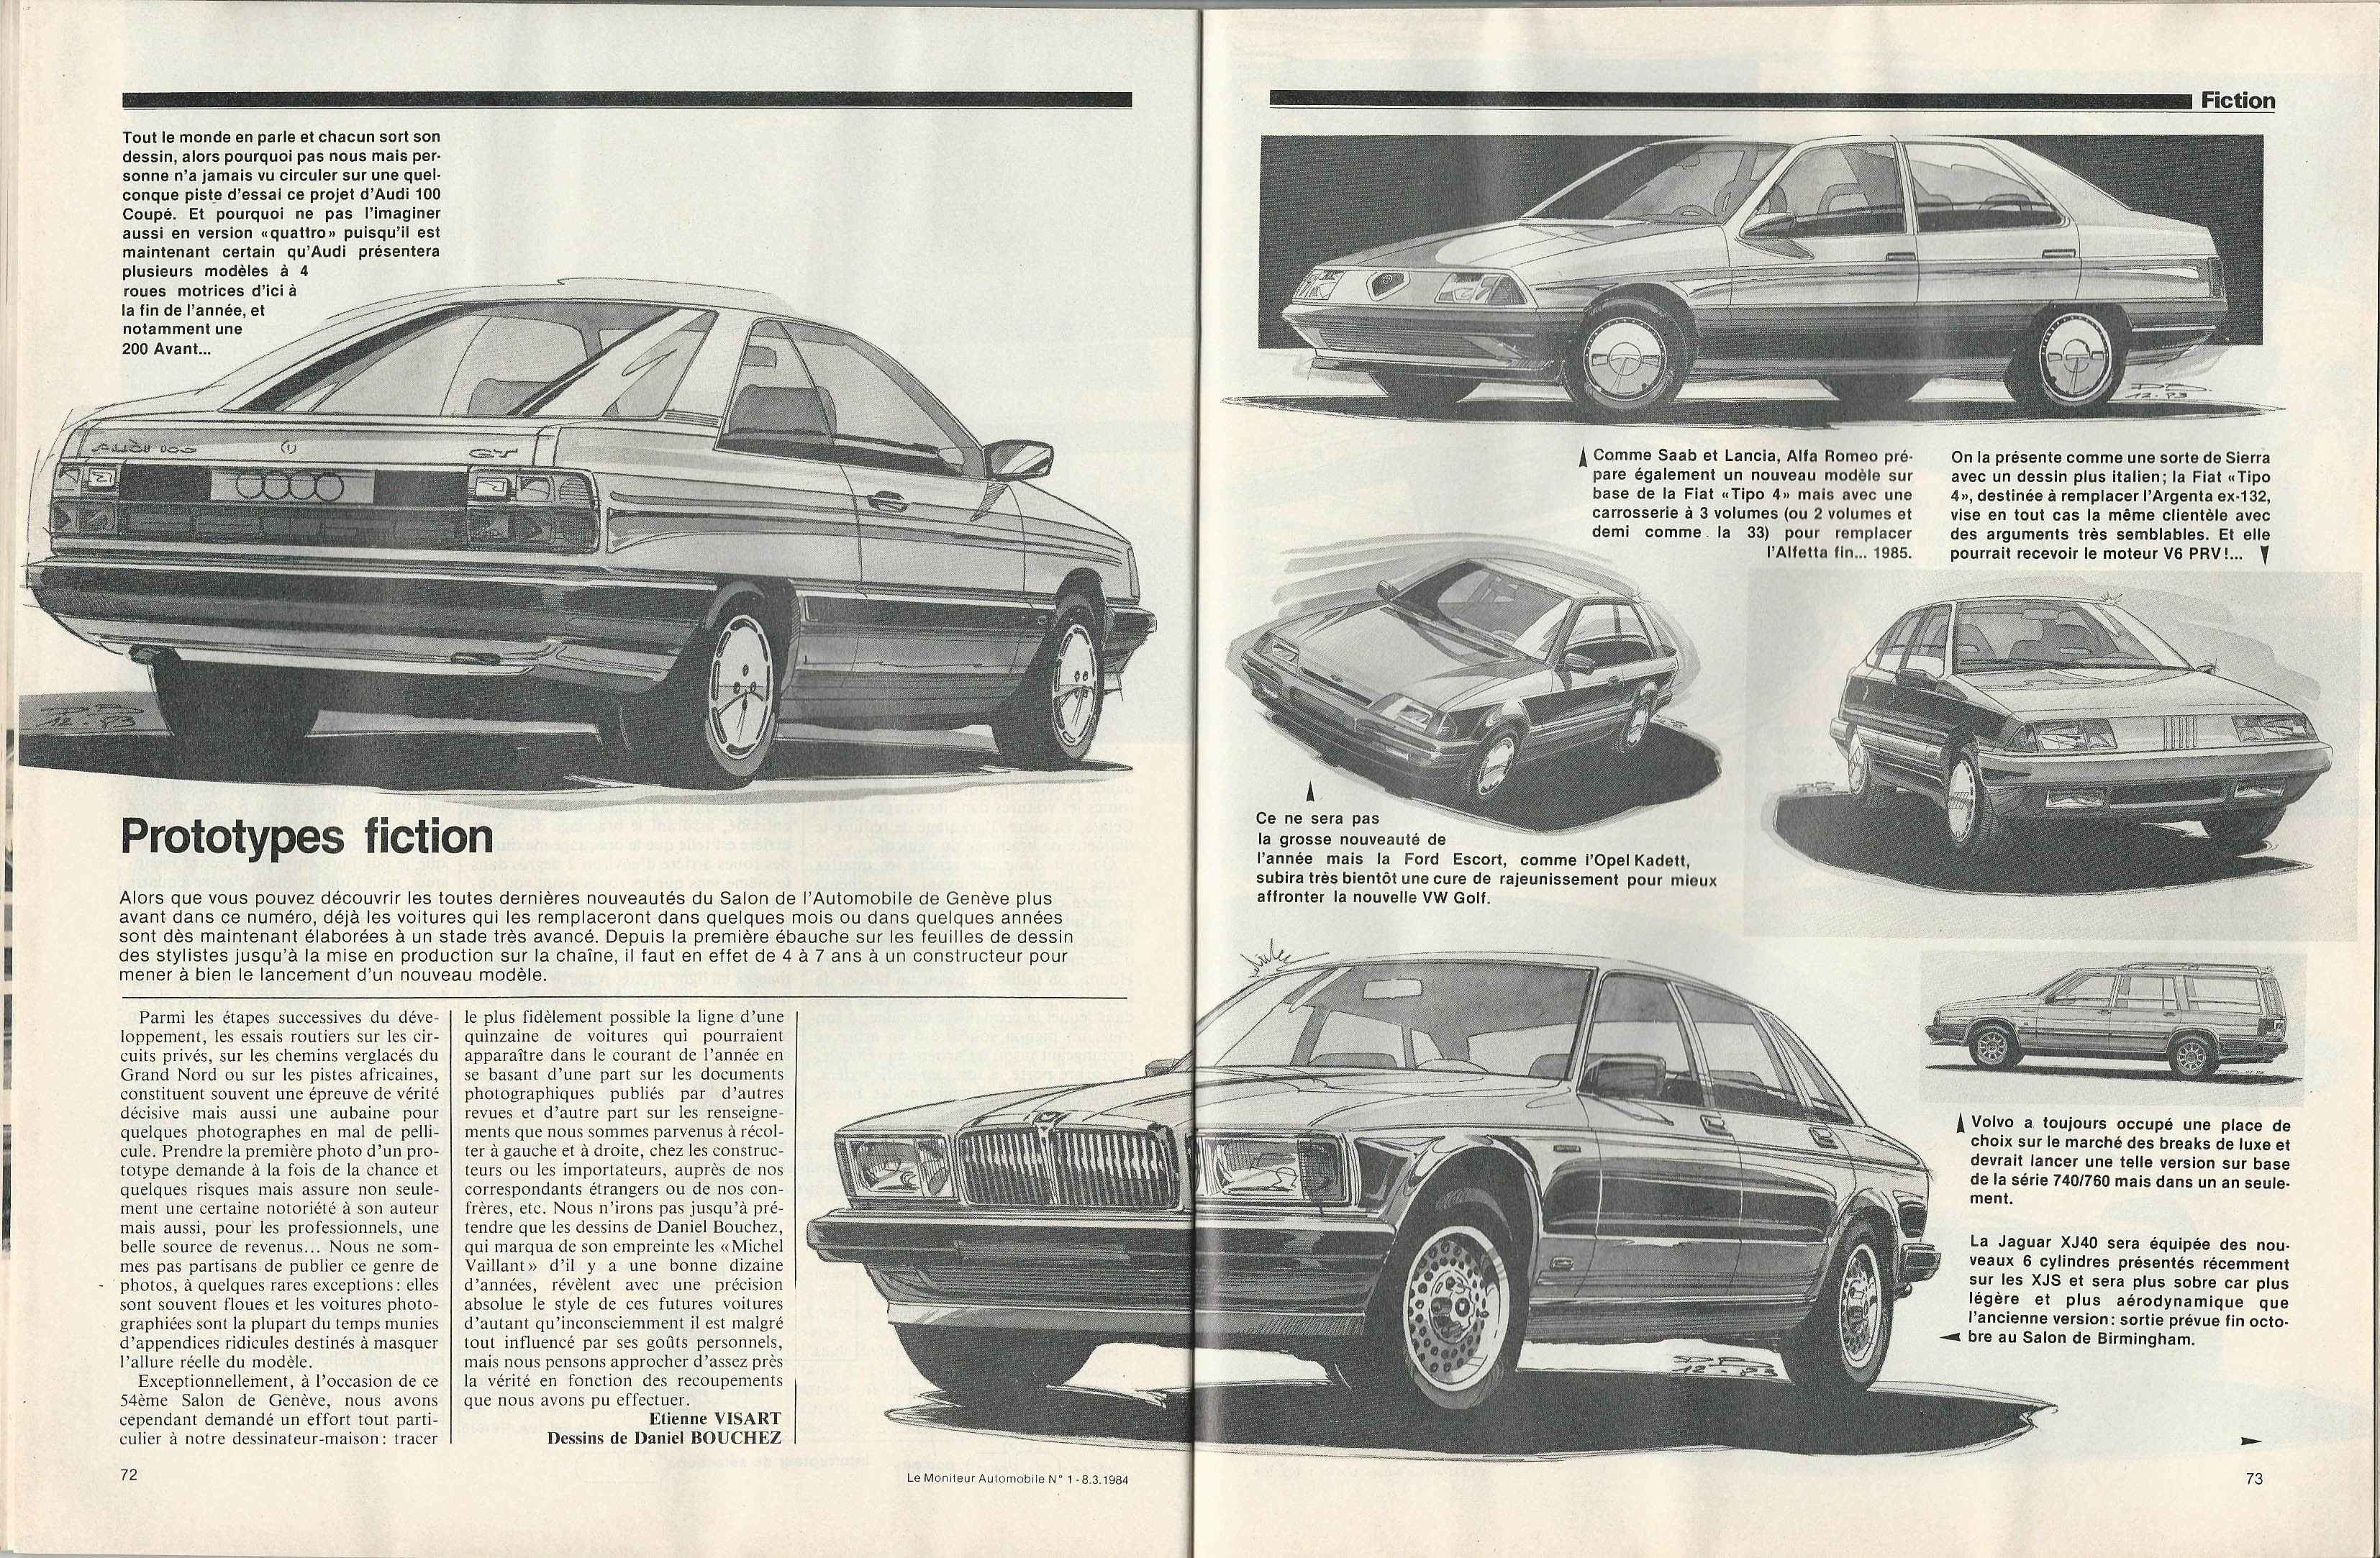 Moniteur Automobile 01 - 08 Mars 1984 (29)